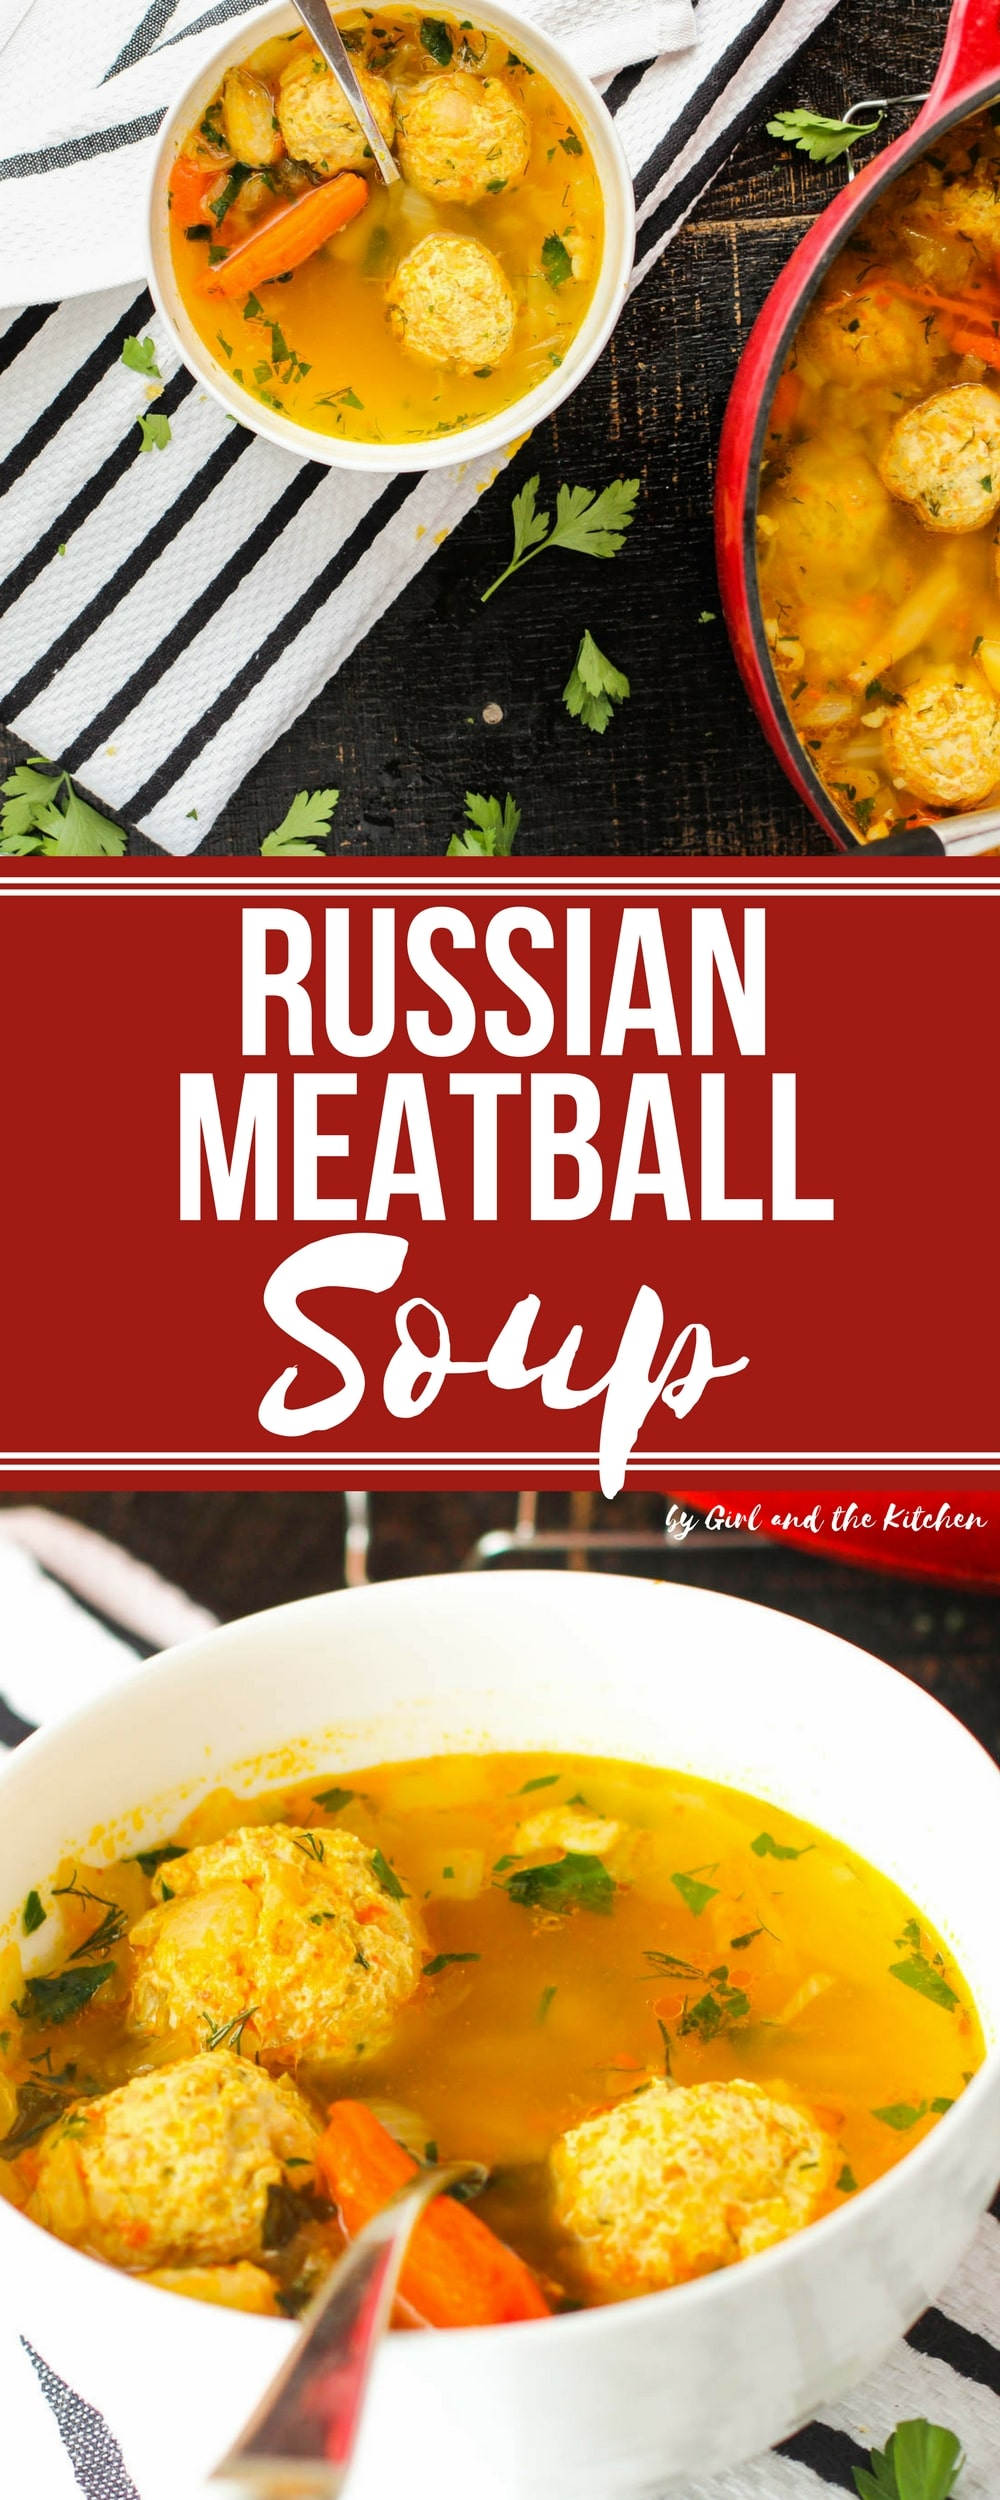 What is the calorie content of soup with meatballs